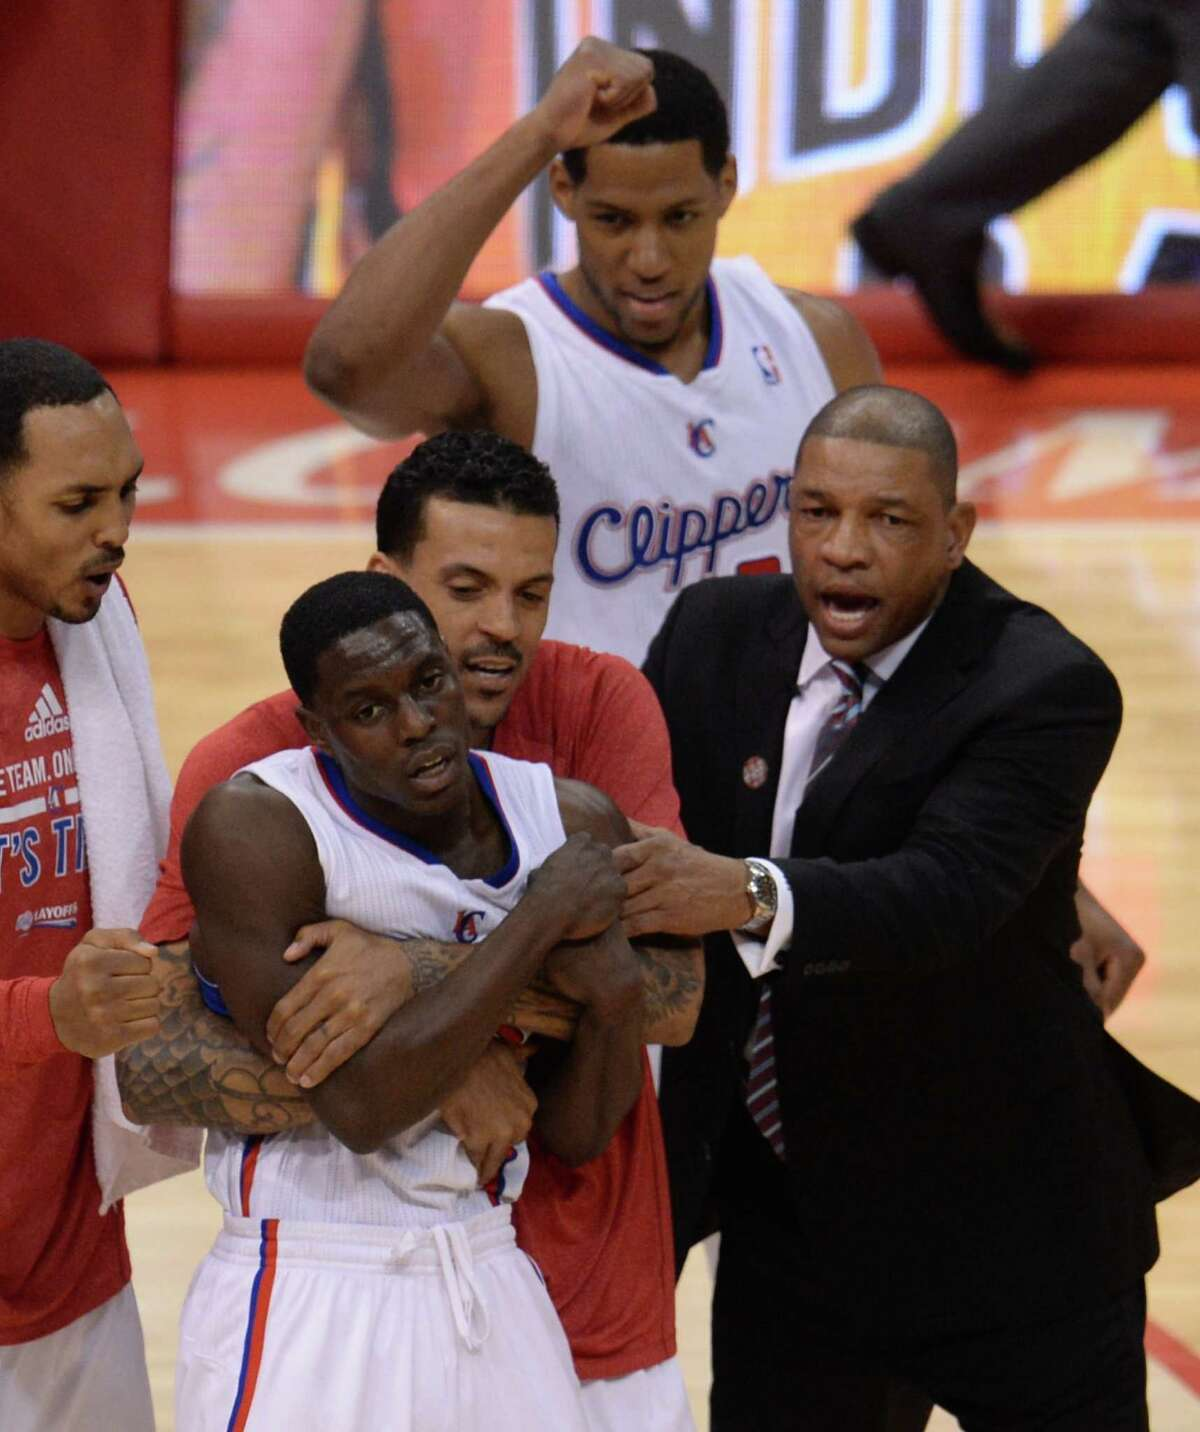 After coming up big down the stretch in Sunday's win over the Thunder, Darren Collison, center, gets mobbed by his Clippers teammates and coach Doc Rivers.